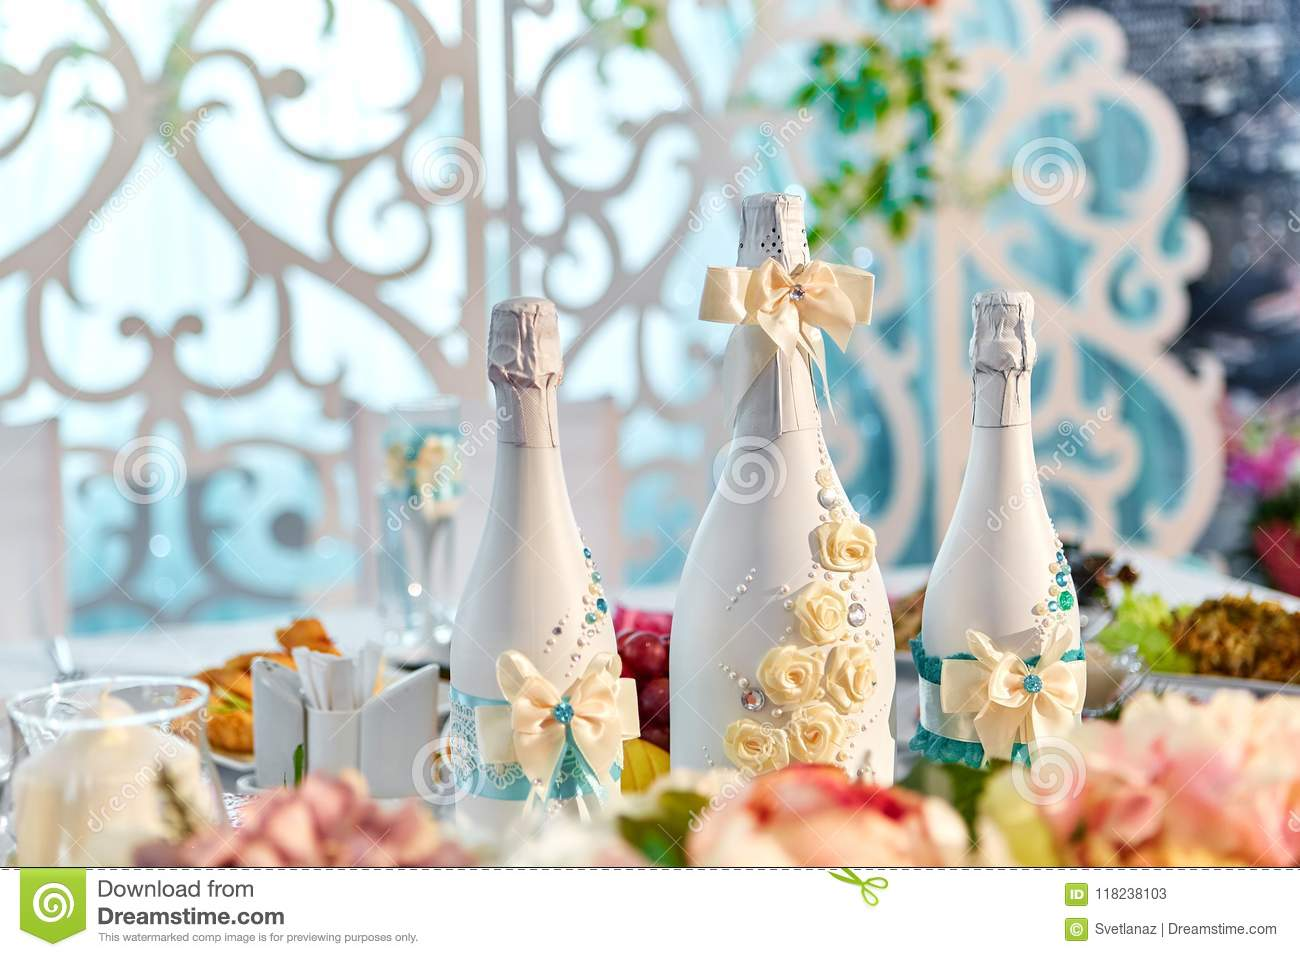 Wedding Decorations And Champagne Bottles Decoration For Wedding